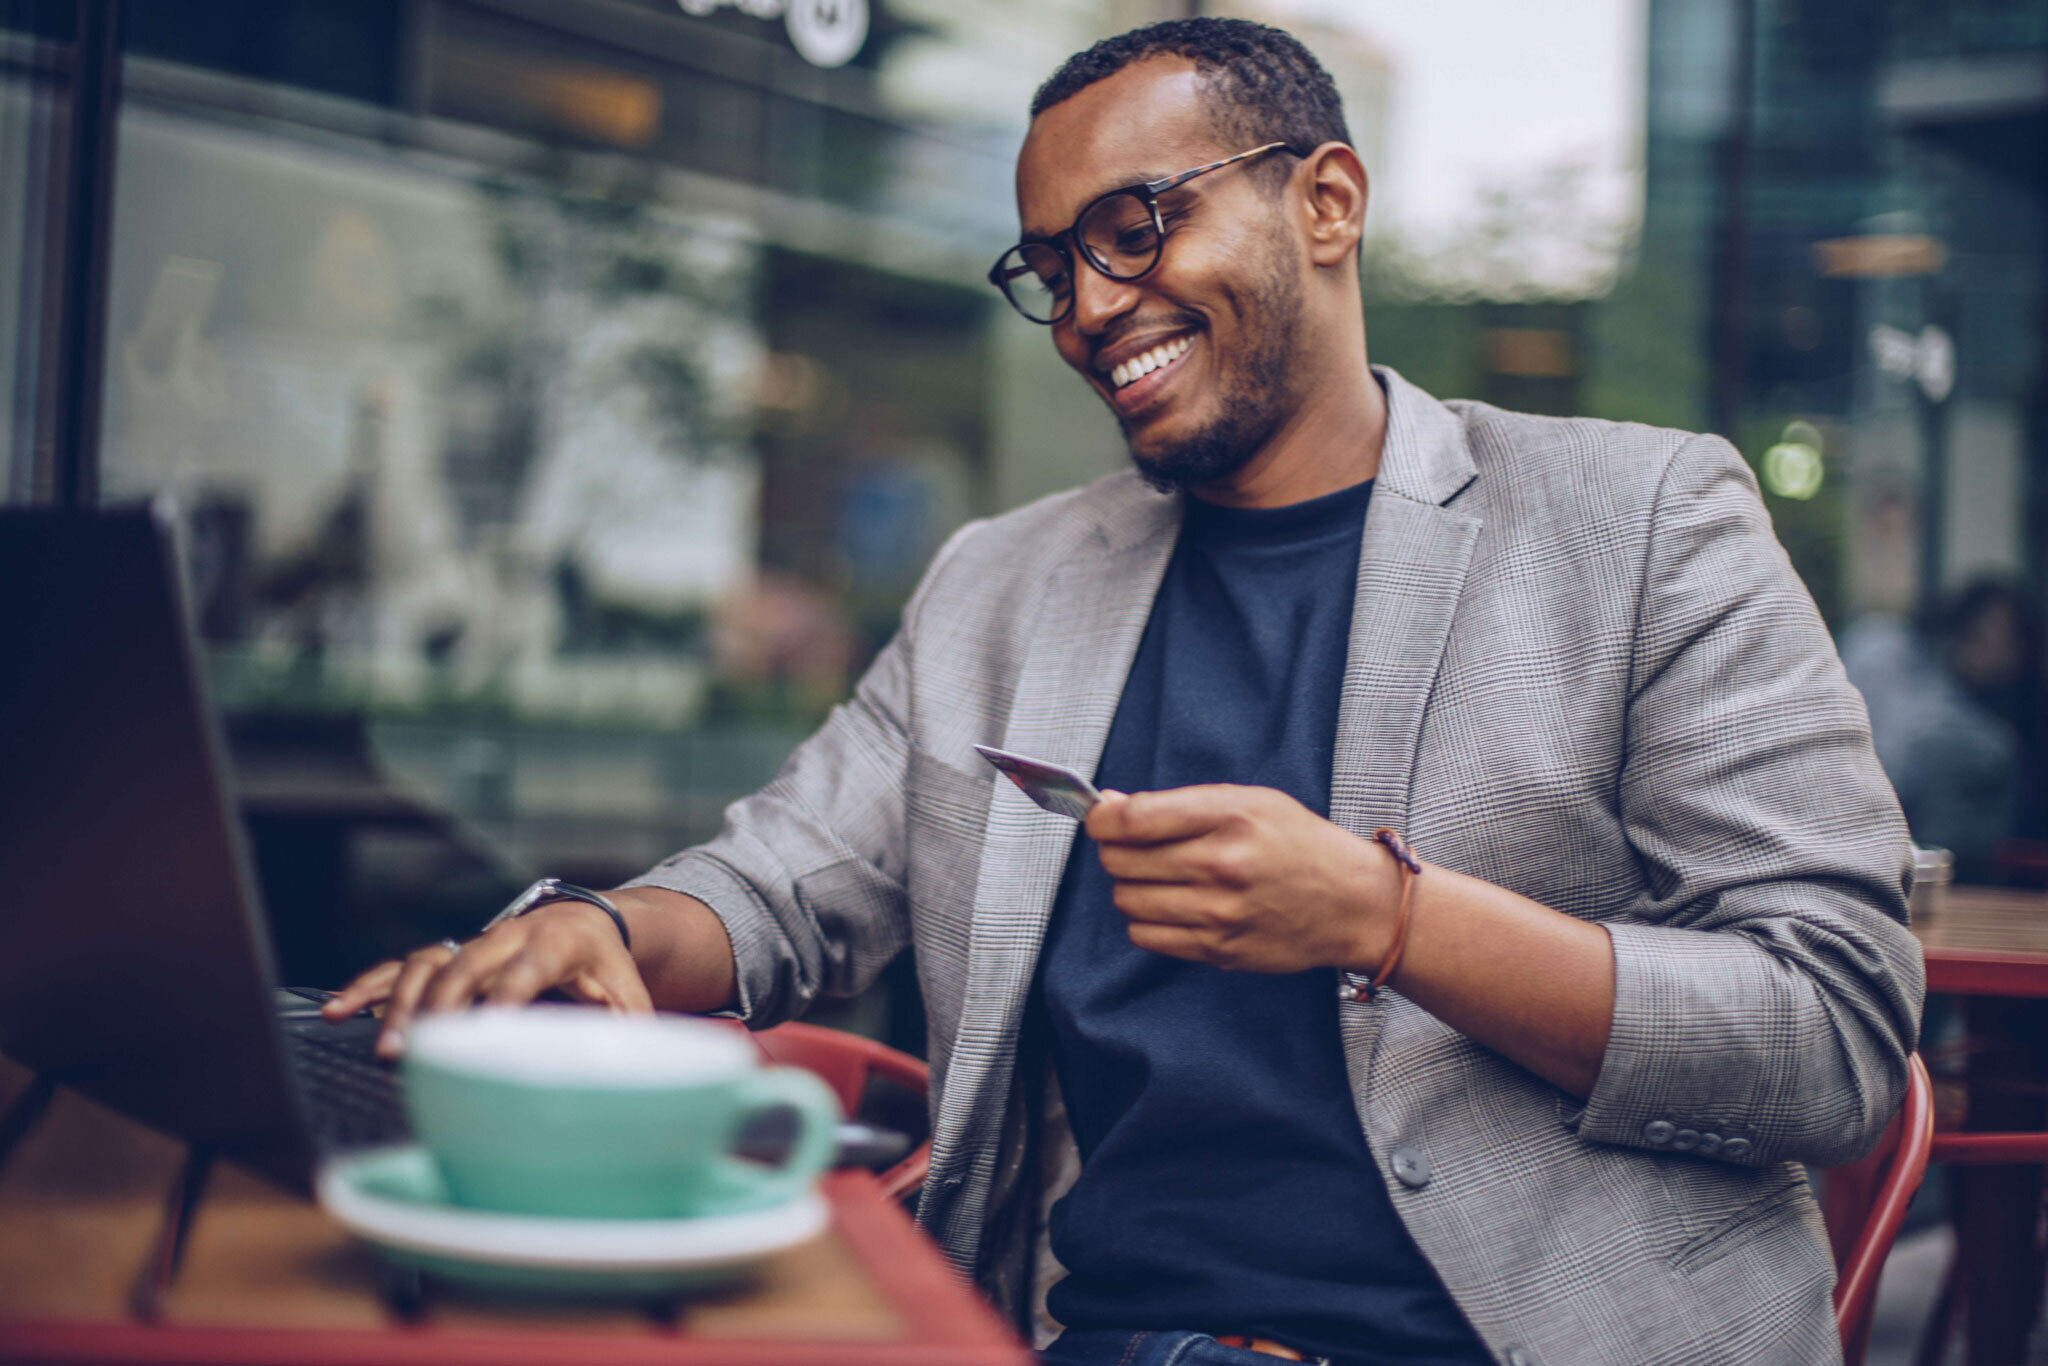 Man smiling and sitting at a cafe with his credit card and computer